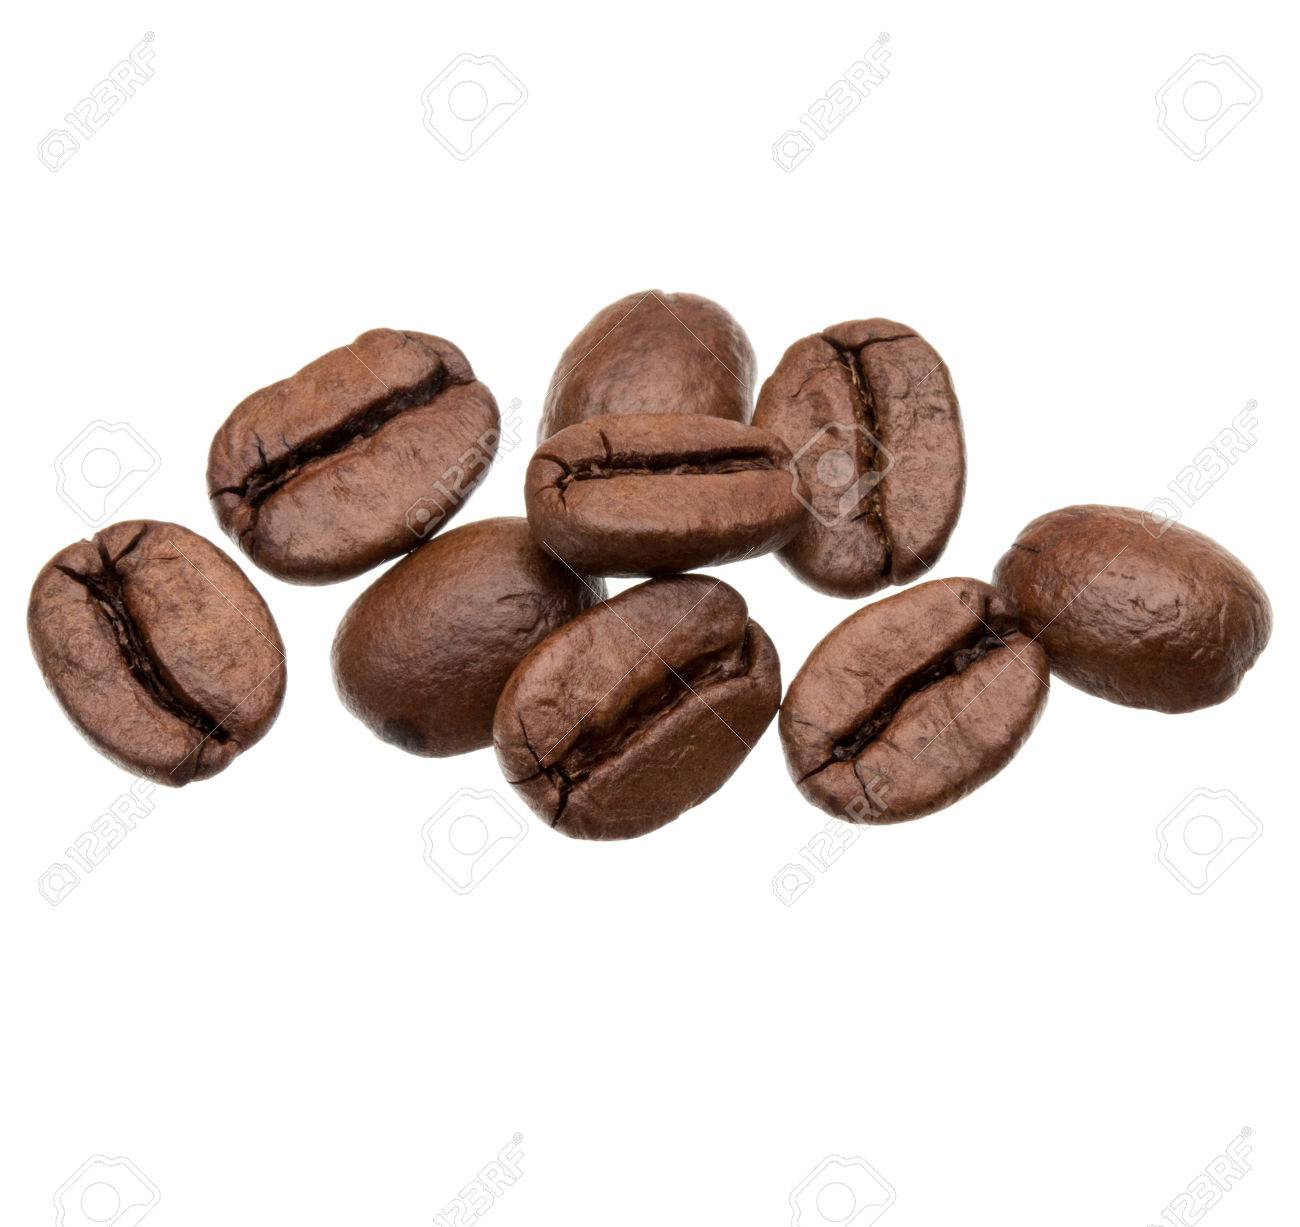 roasted coffee beans isolated in white background cutout - 36001601